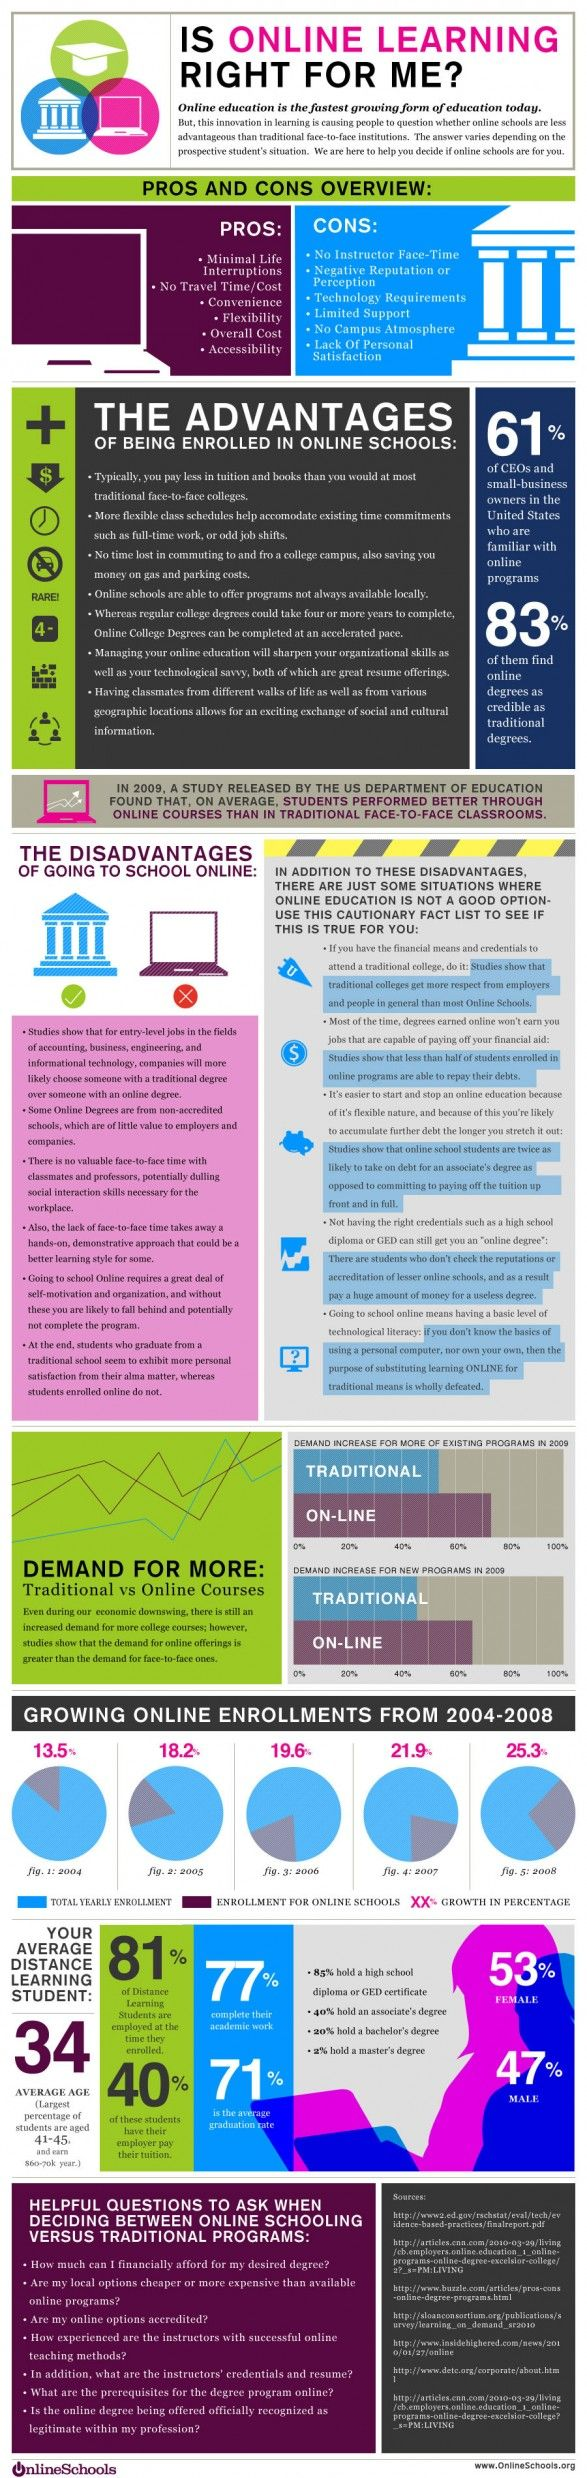 Is online learning right for me? [infographic]